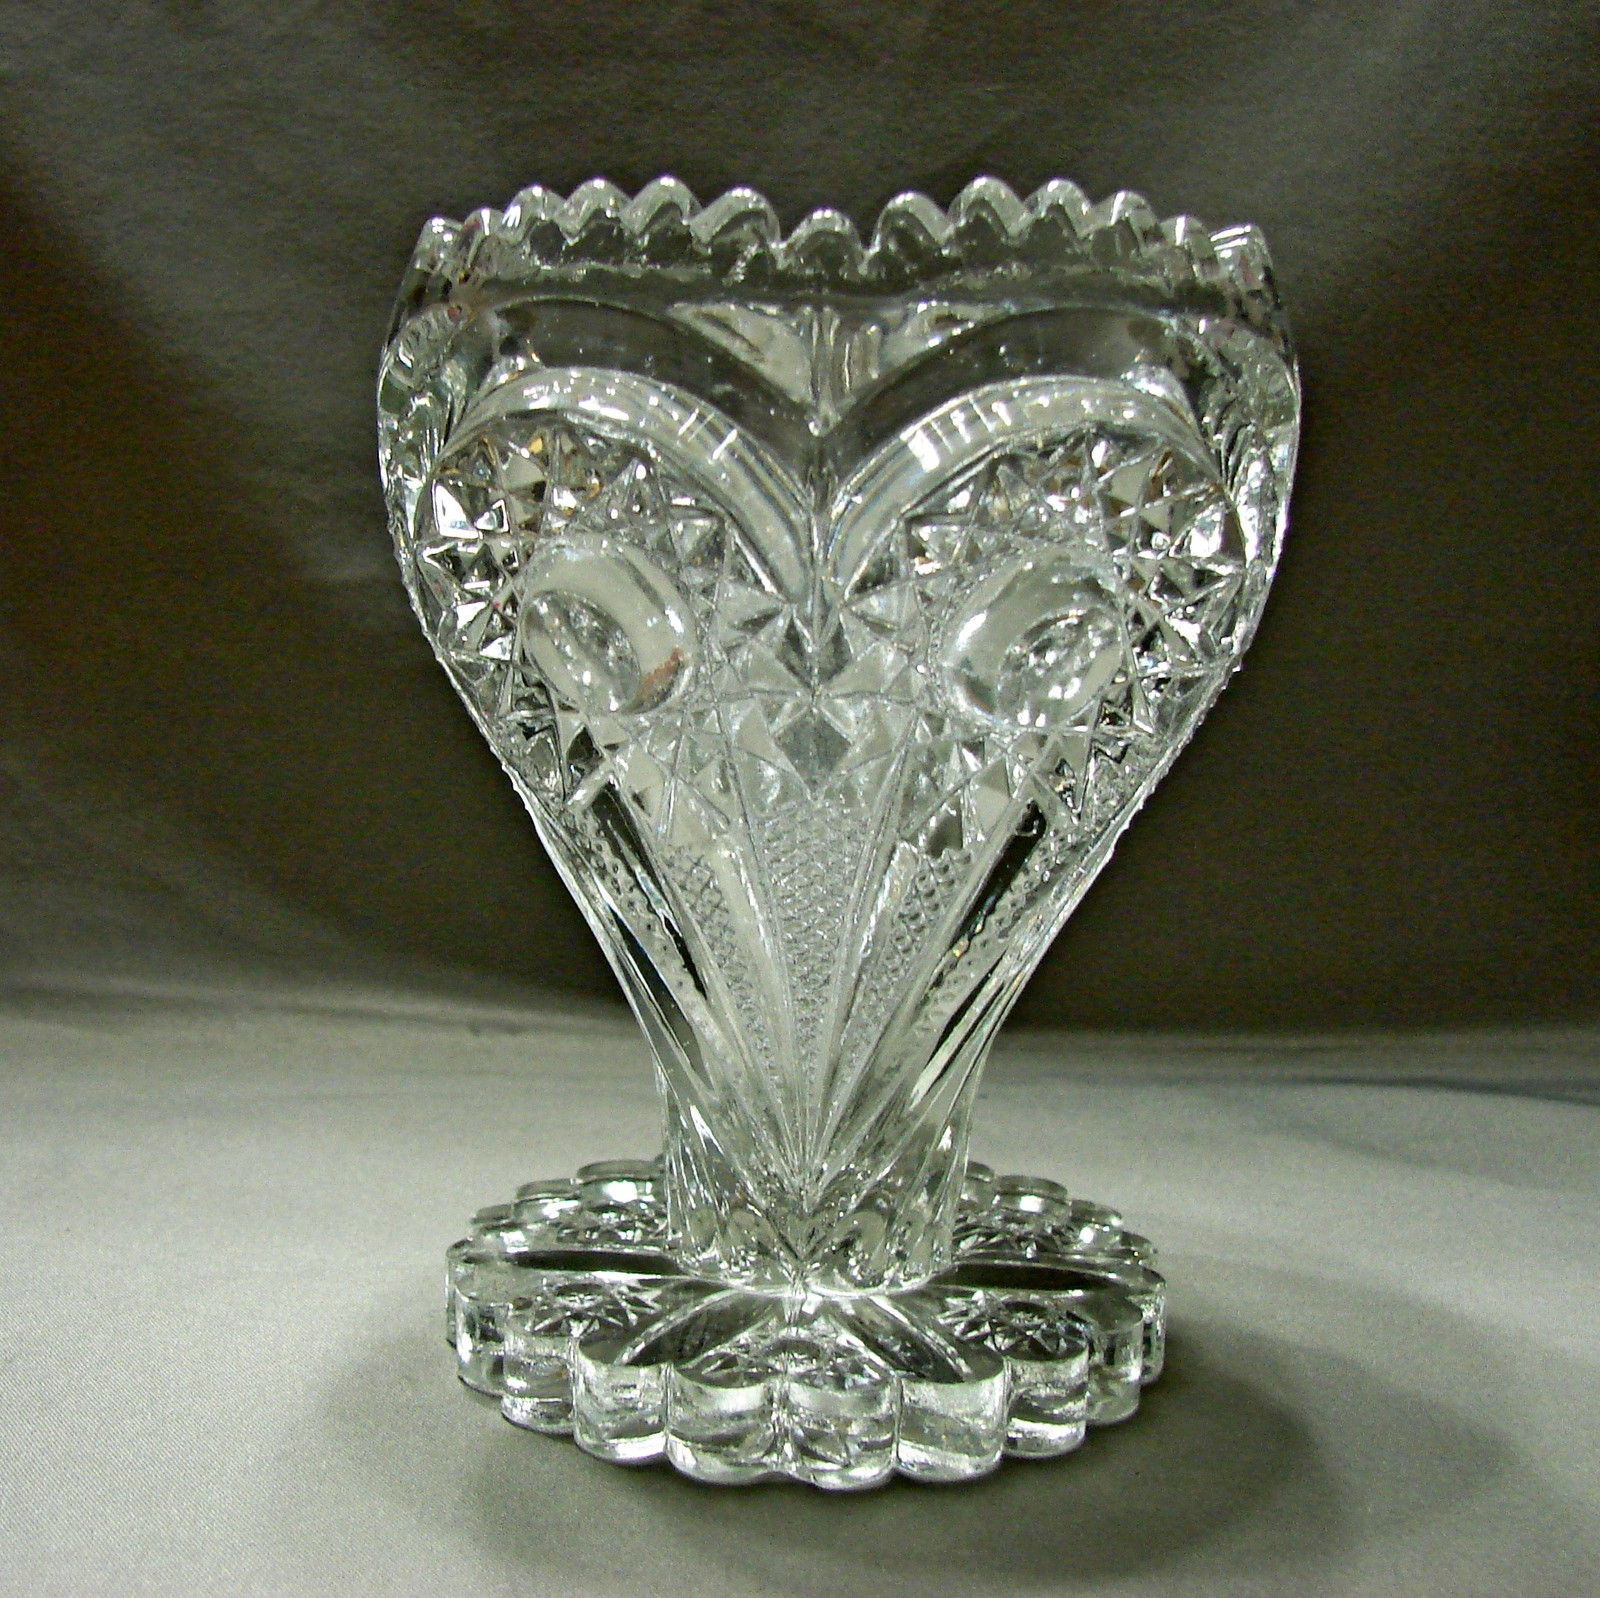 Antique Glass Vases for Sale Of Eapg Zippered Heart Glass Vase Antique and 10 Similar Items with Eapg Zippered Heart Glass Vase Antique Imperial Glass Circa 1910